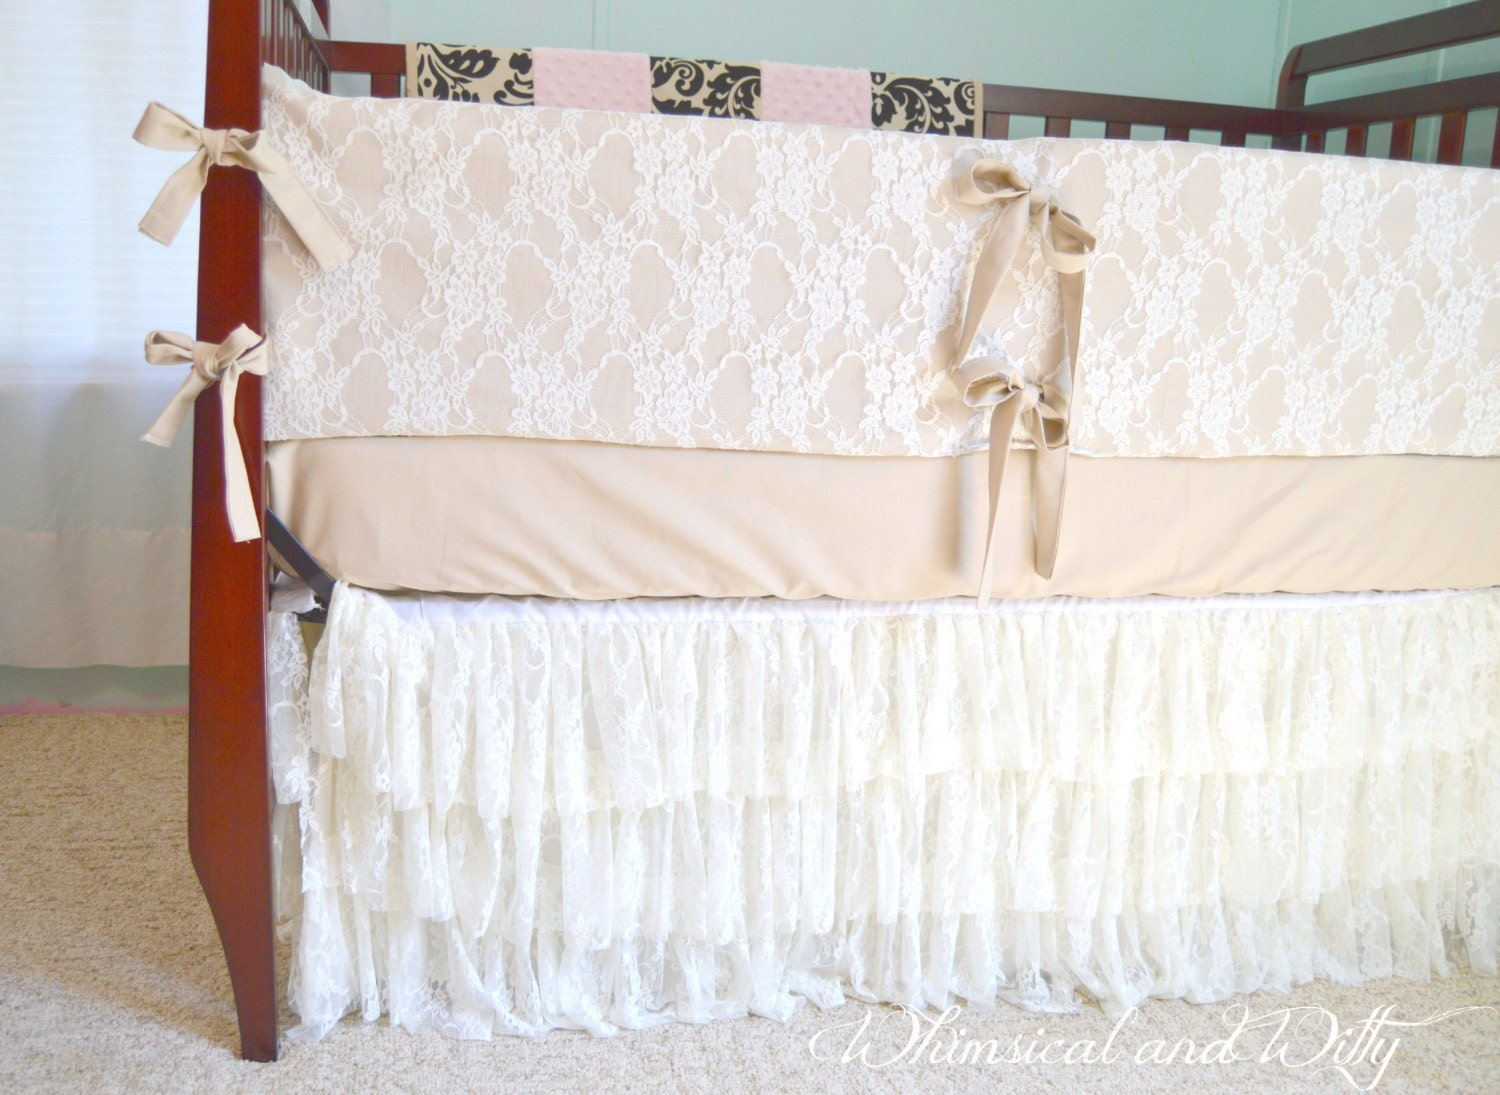 Lace baby crib bedding burlap colored cotton and ivory lace for Burlap and lace bedroom